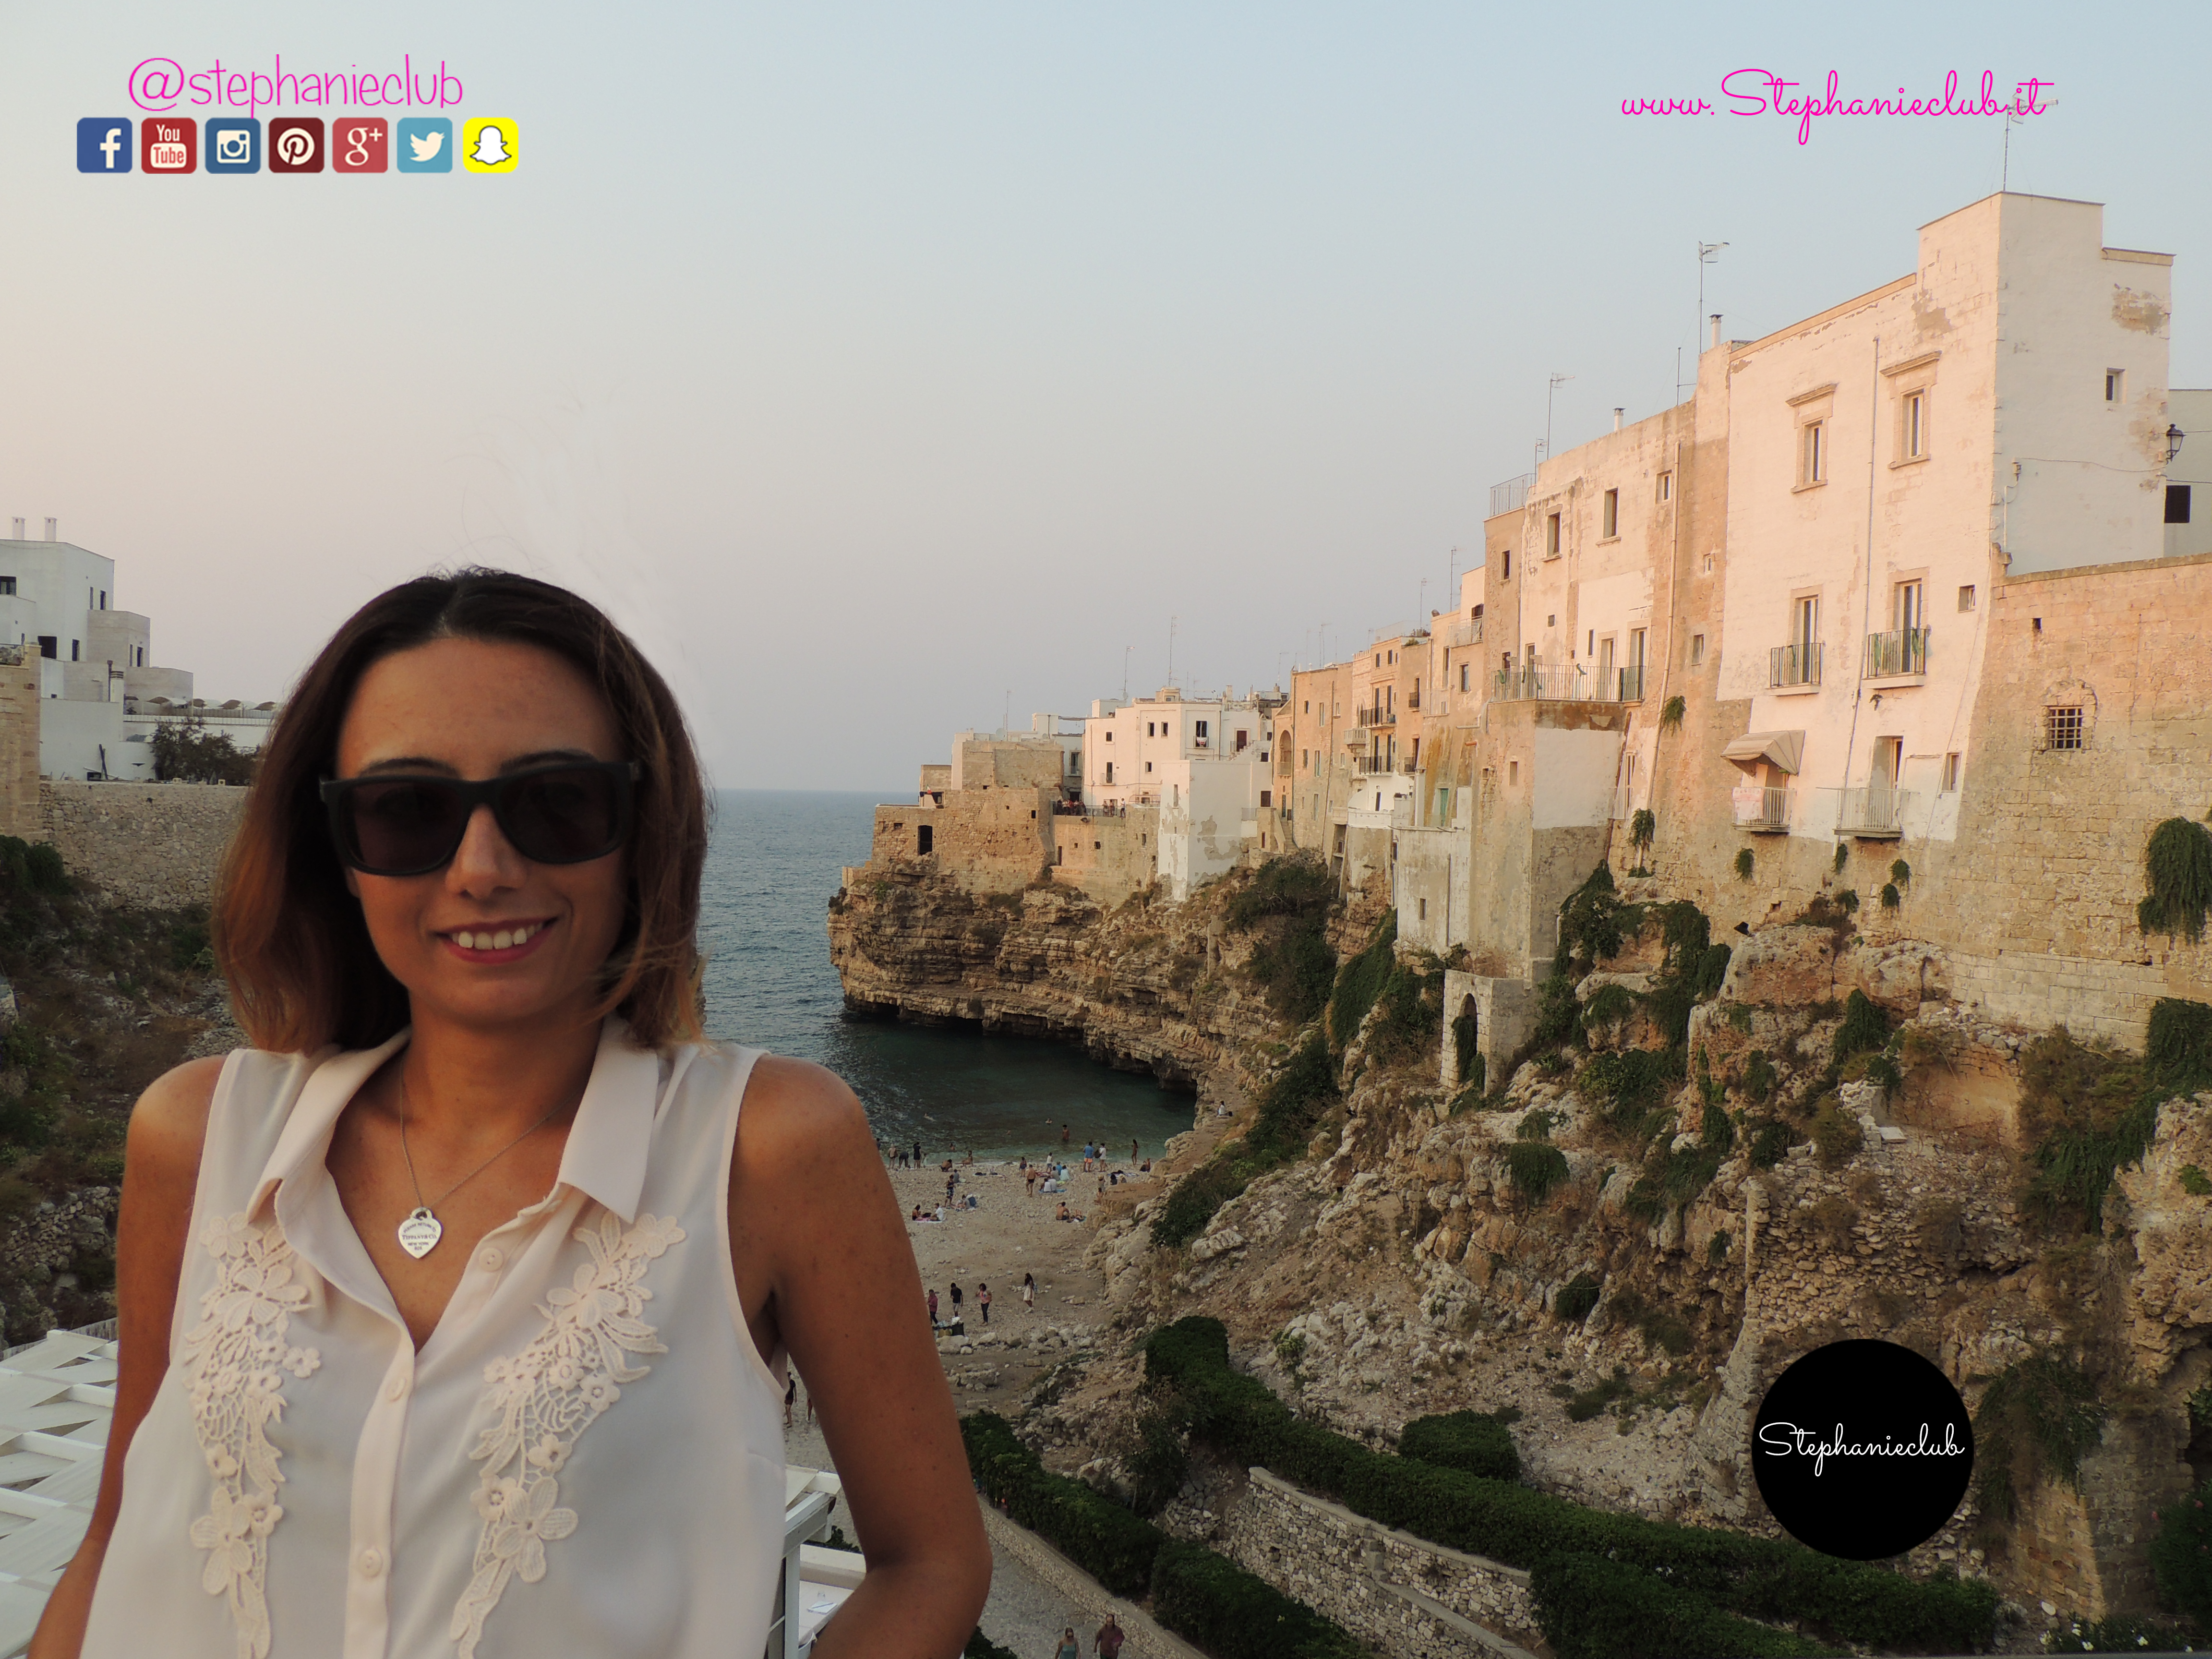 Backstage - Photo Shooting a Polignano a mare_06